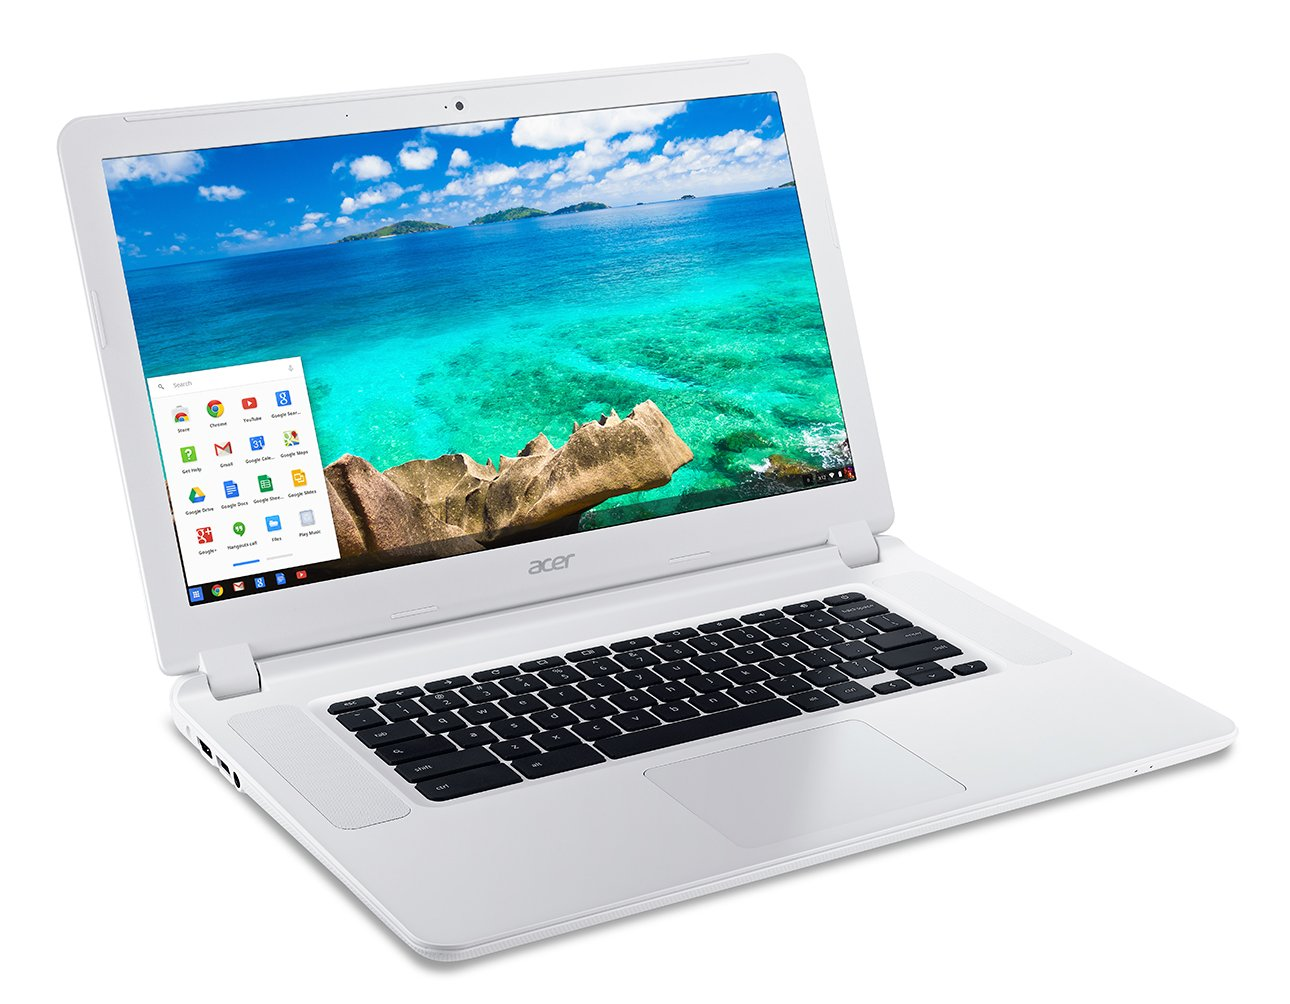 Acer Chromebook 15 CB5-571-58HF Laptop